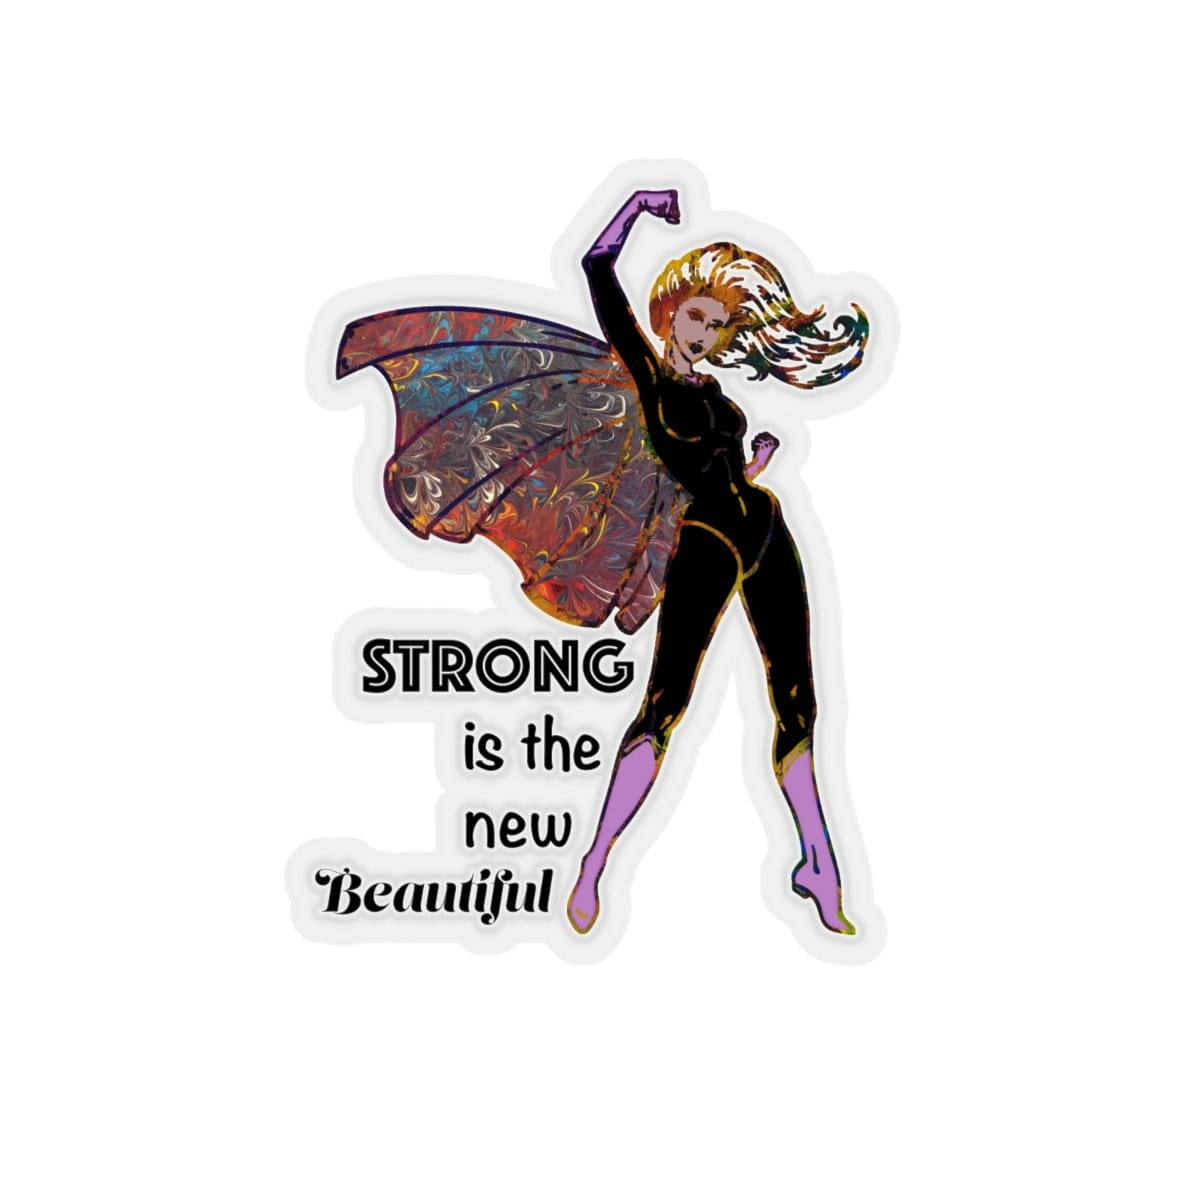 Strong - Kiss-Cut Sticker - Fiercely Fem